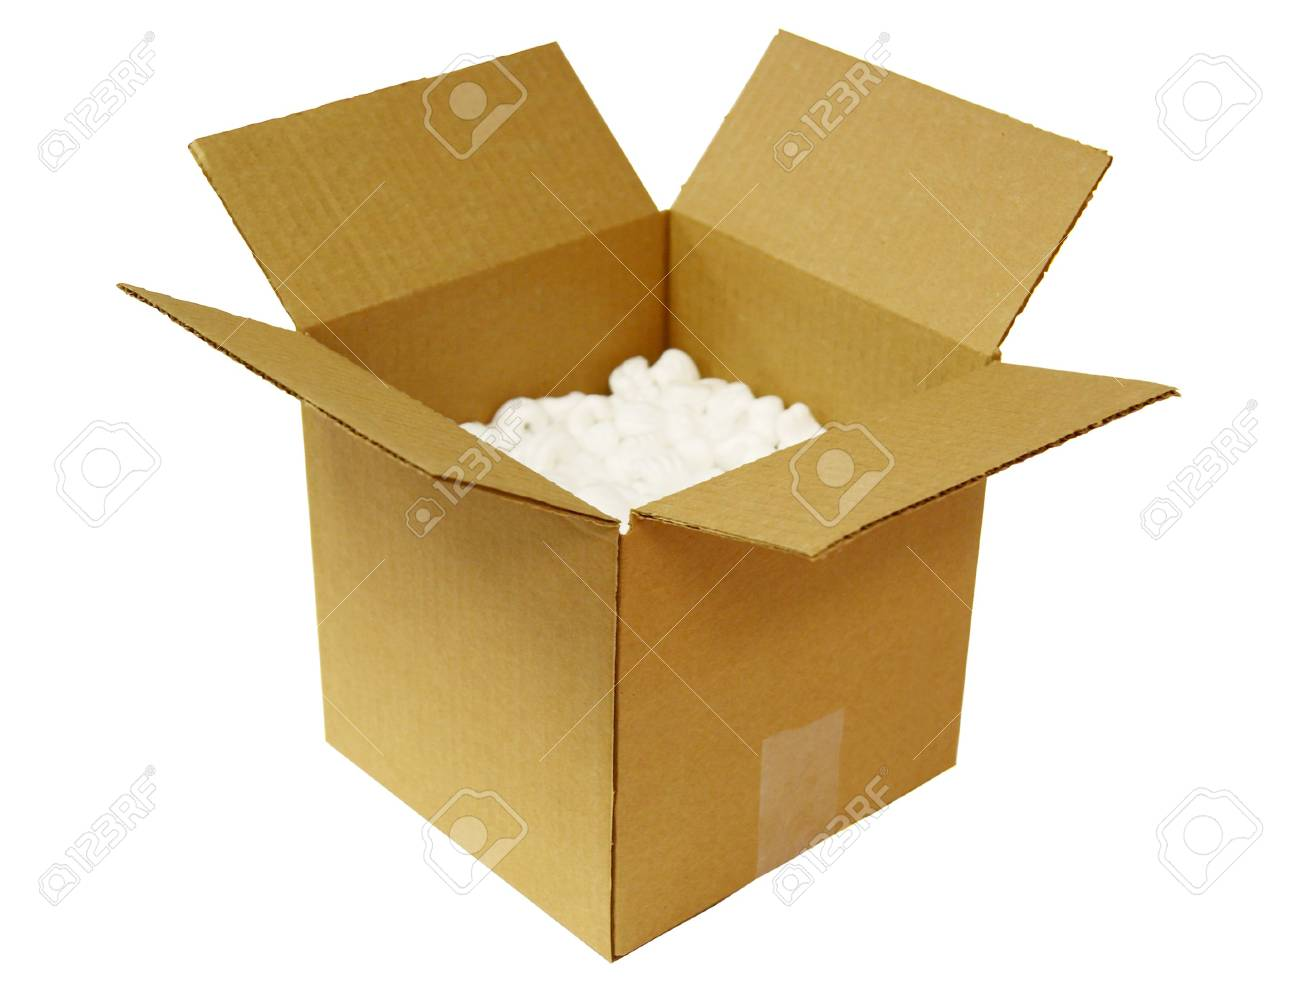 Open Cardboard Box Stock Photo - 7820038